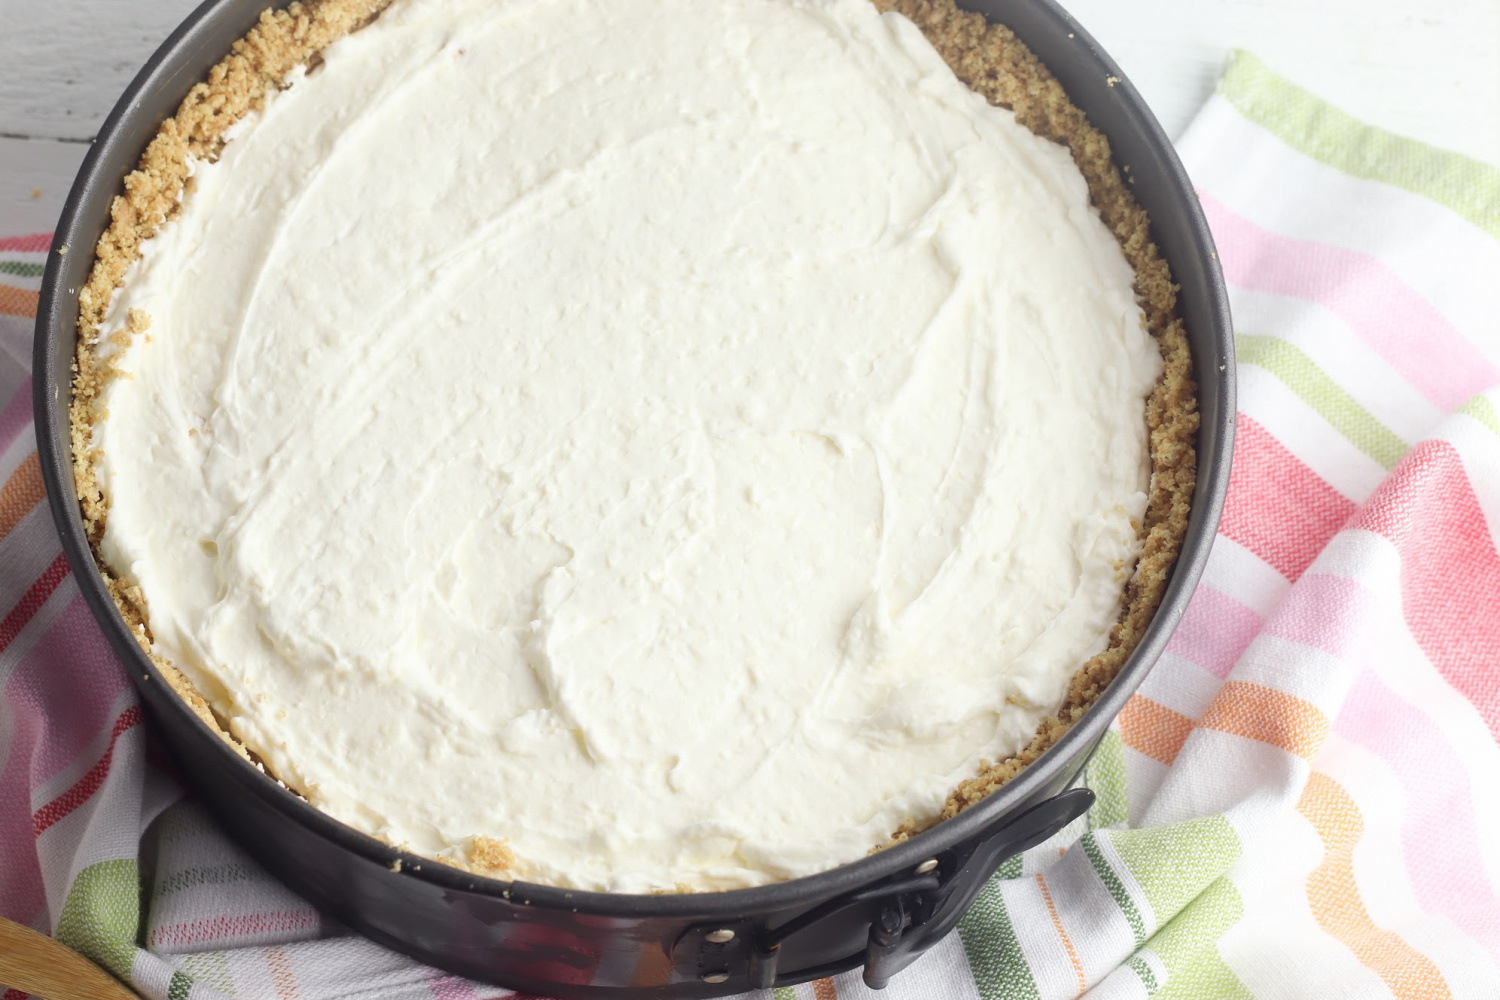 Blueberry Cheesecake Instructions involve combining heavy cream, cream cheese and sugar onto a graham cracker crust.